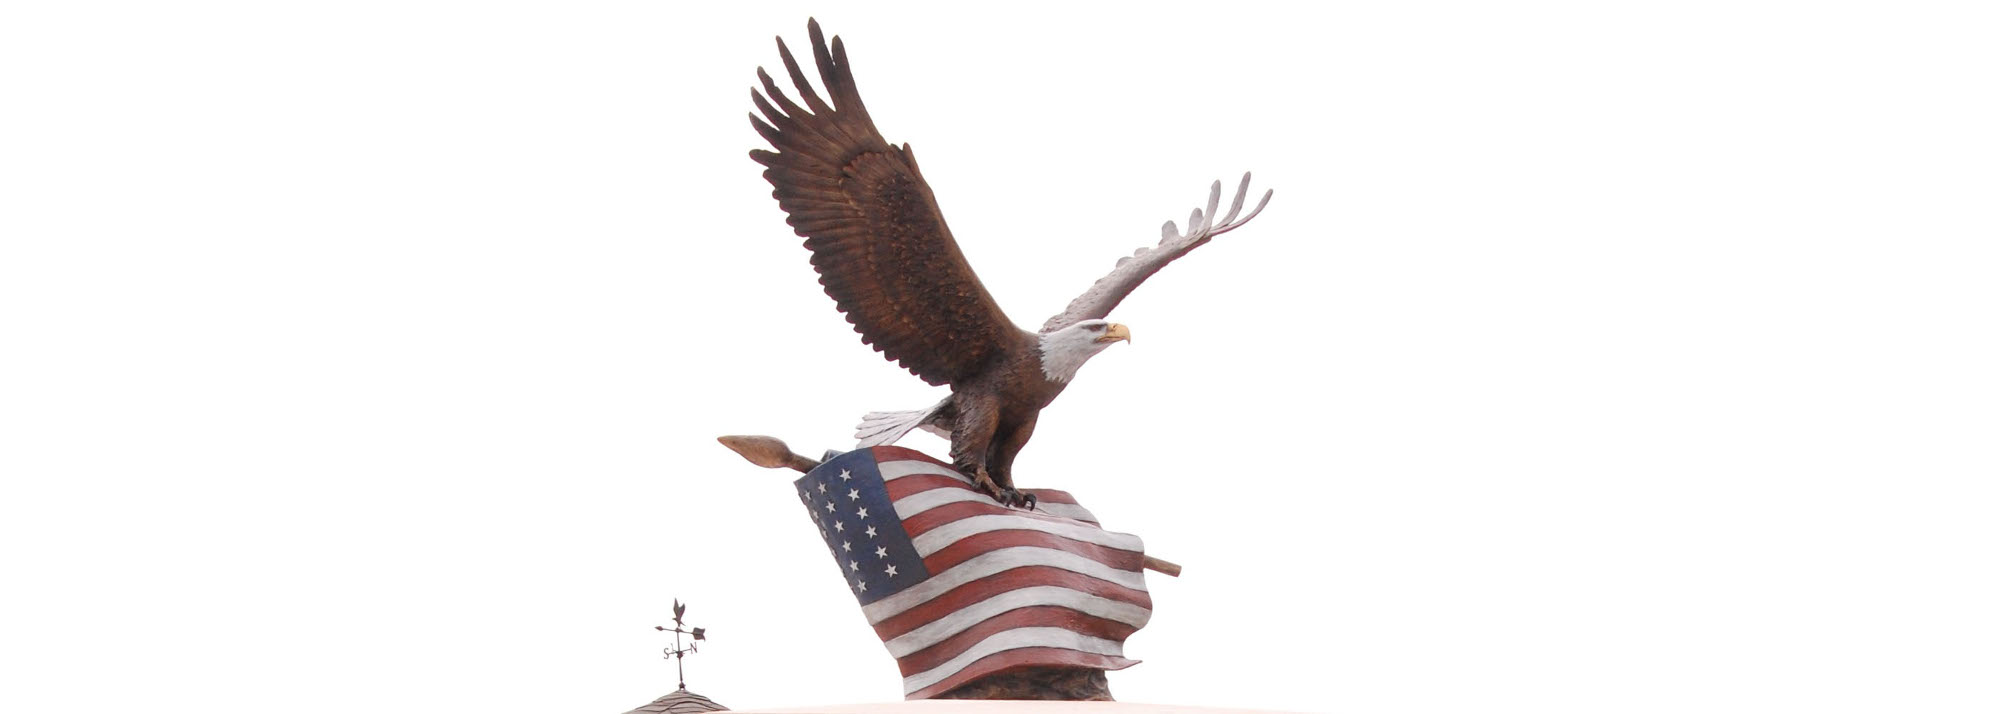 bronze military sculpture, bald eagle with WWII American flag by Sutton Betti